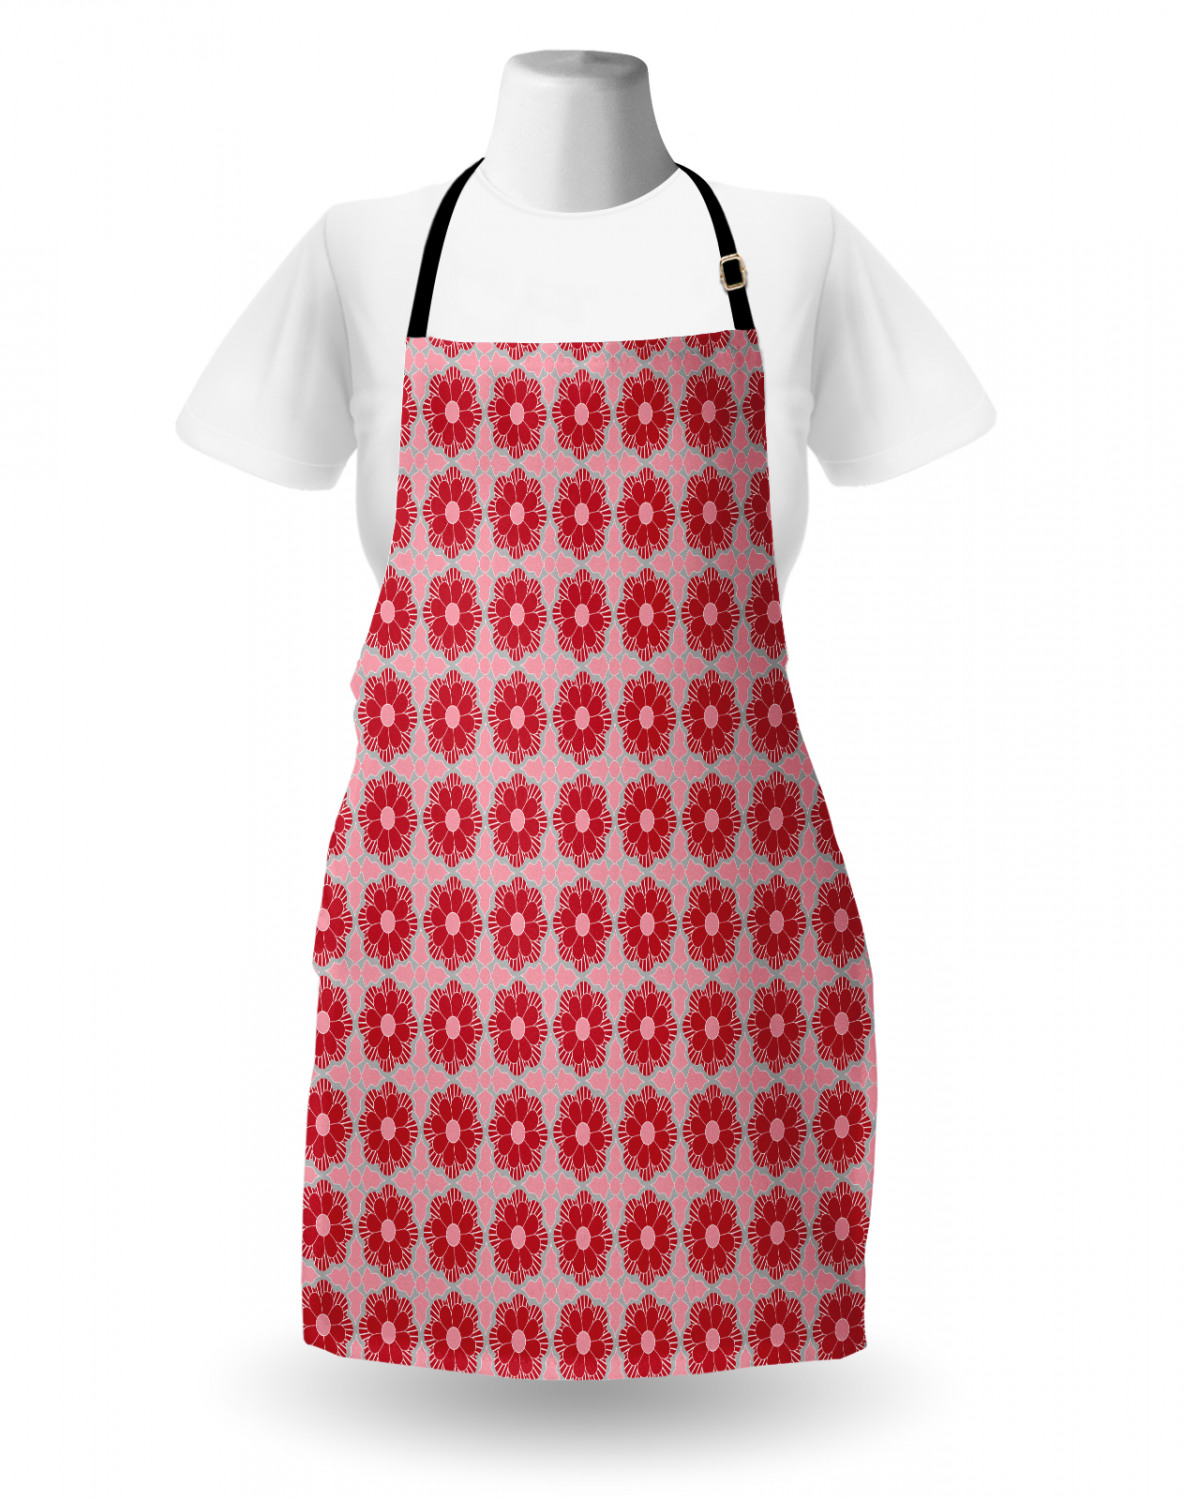 Ambesonne-Outdoor-Use-Apron-with-Adjustable-Neck-Strap-for-Gardening-and-Cooking miniatura 137